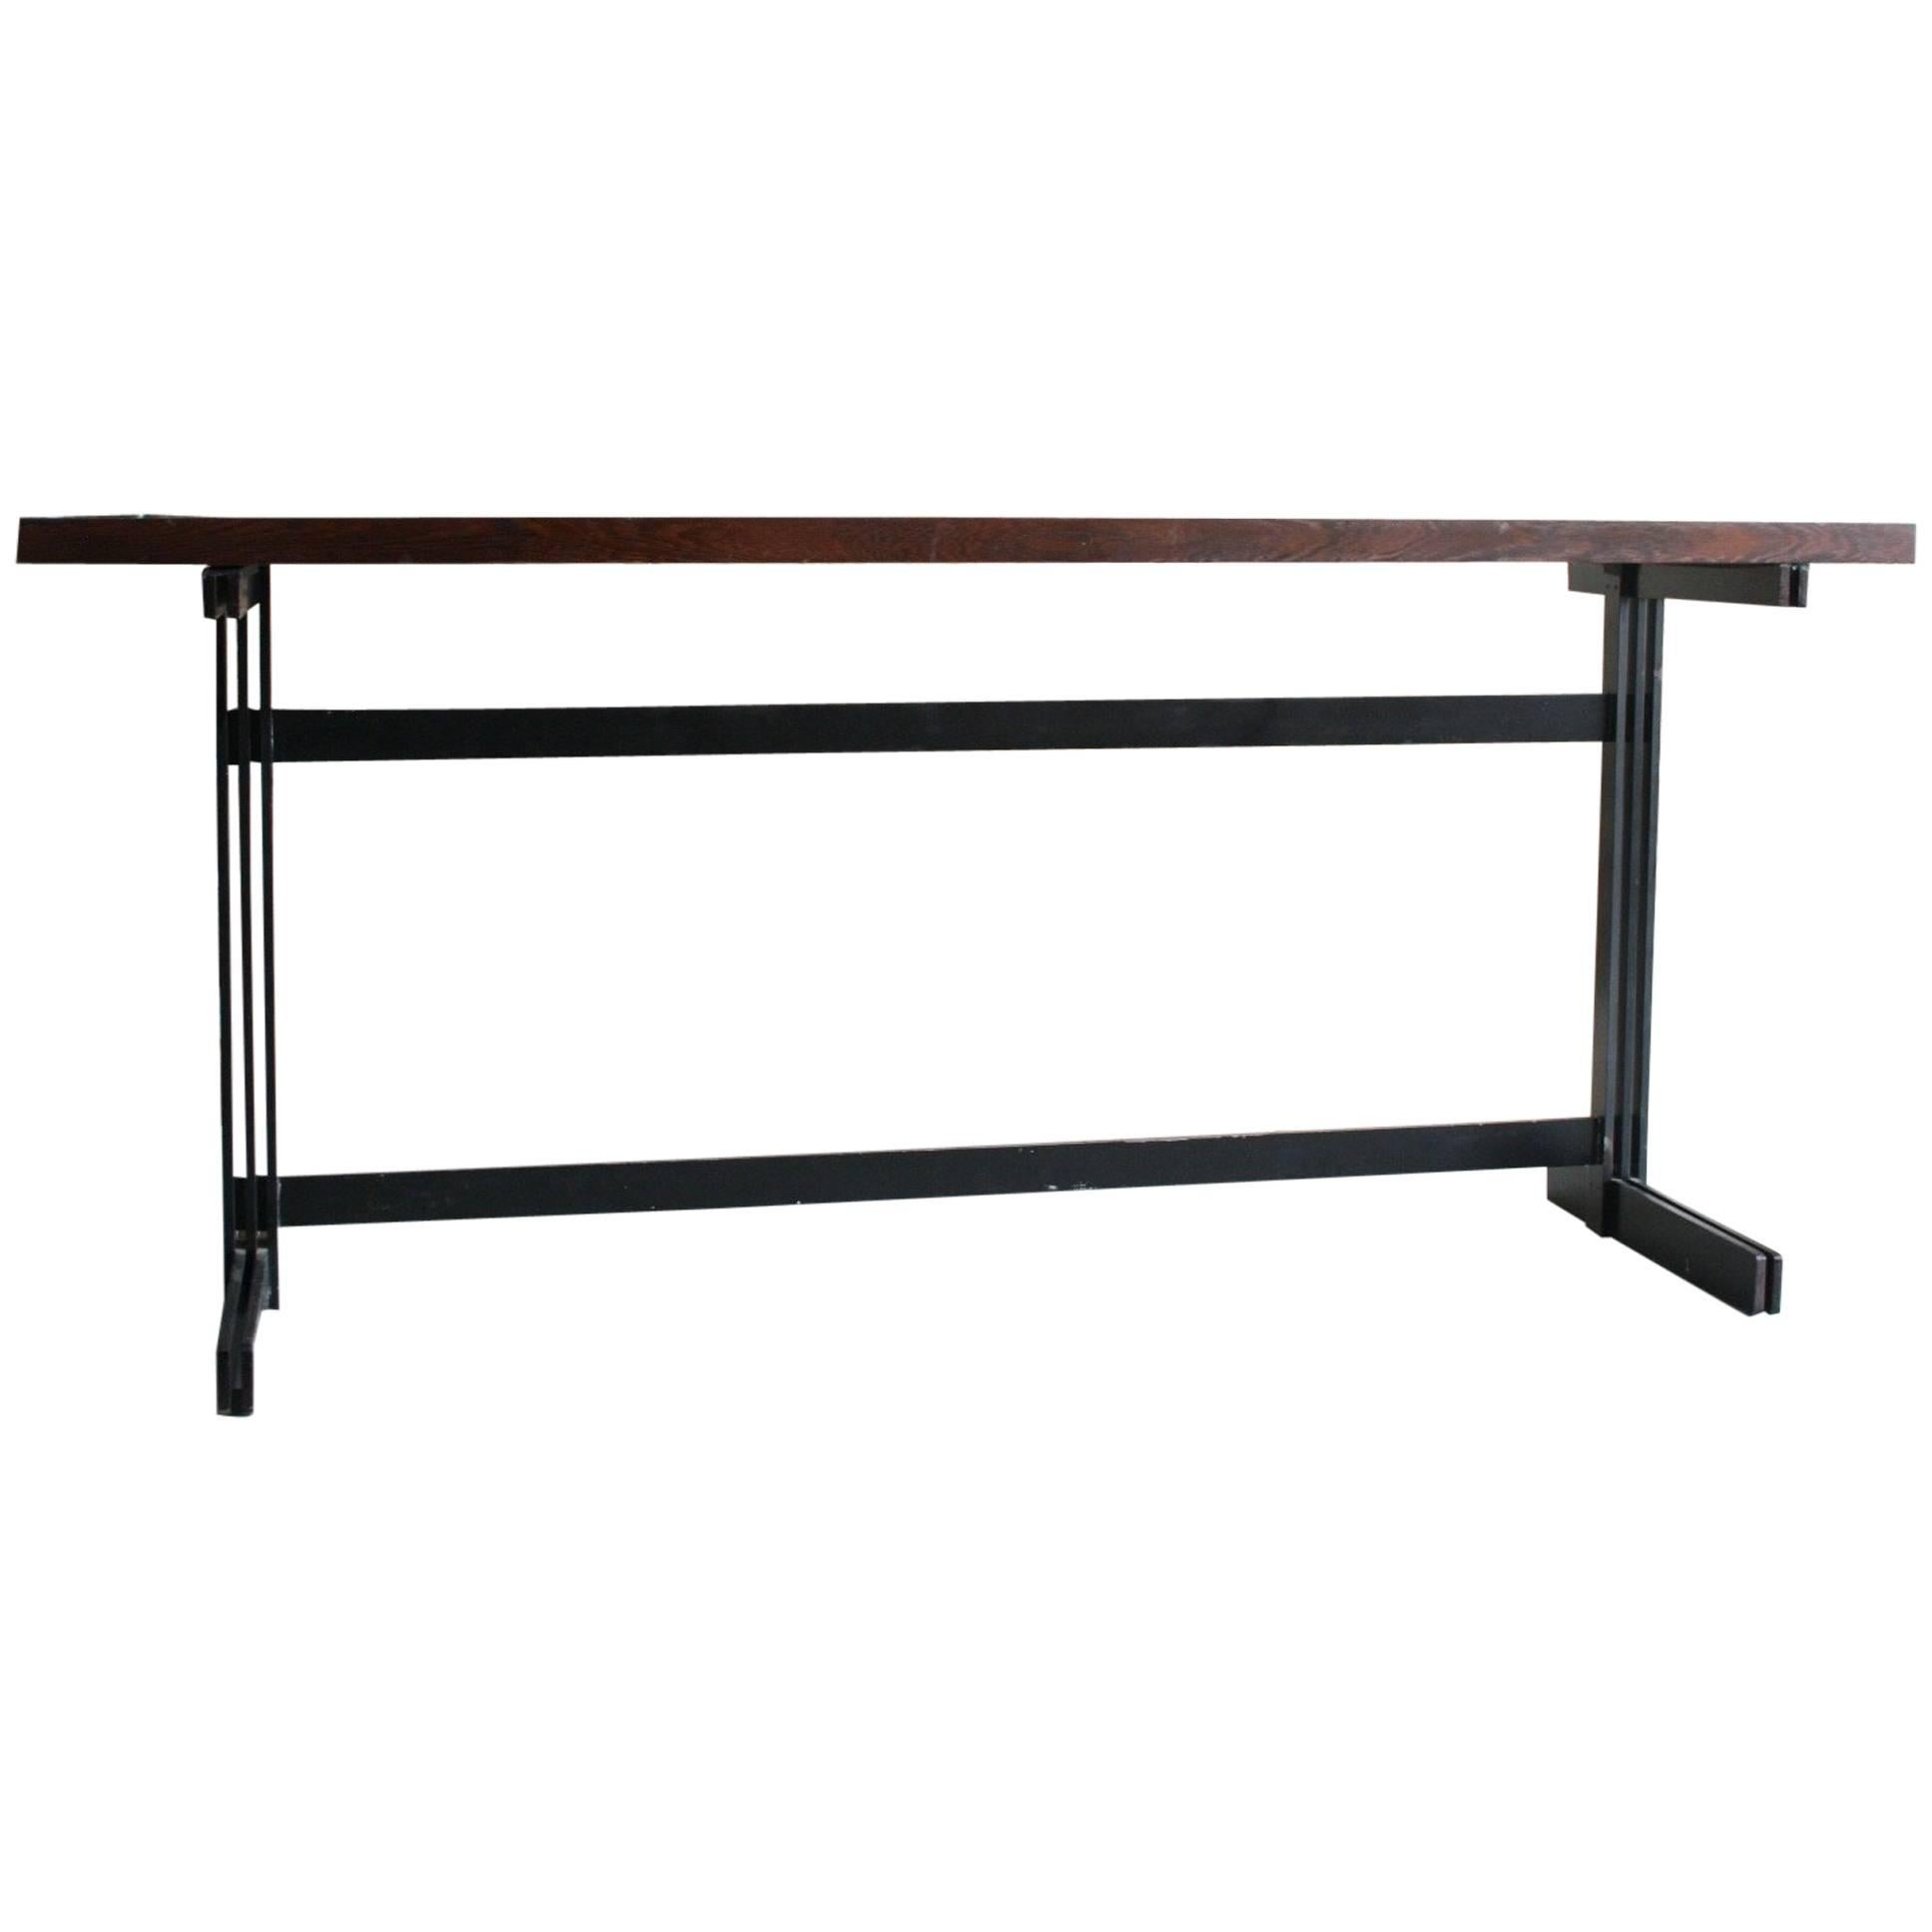 jules wabbes le mobilier universel belgium wenge and steel console with universal mobilier. Black Bedroom Furniture Sets. Home Design Ideas